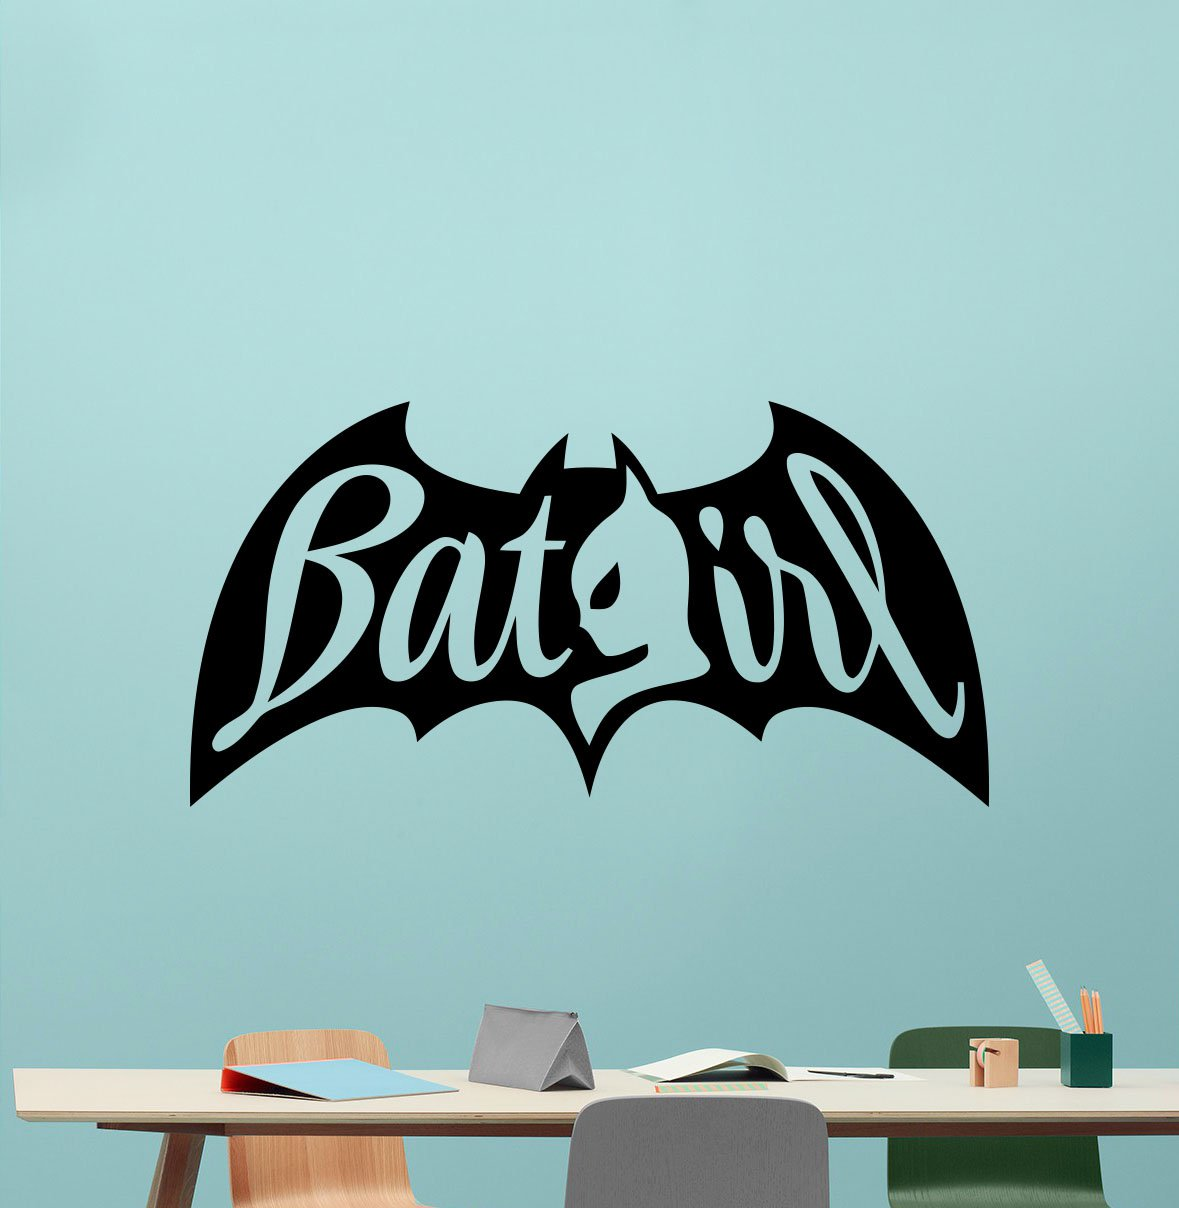 amazon com batgirl wall decal marvel batman comics superhero amazon com batgirl wall decal marvel batman comics superhero vinyl sticker wall decor cool wall art kids teen girl room wall design modern bedroom wall